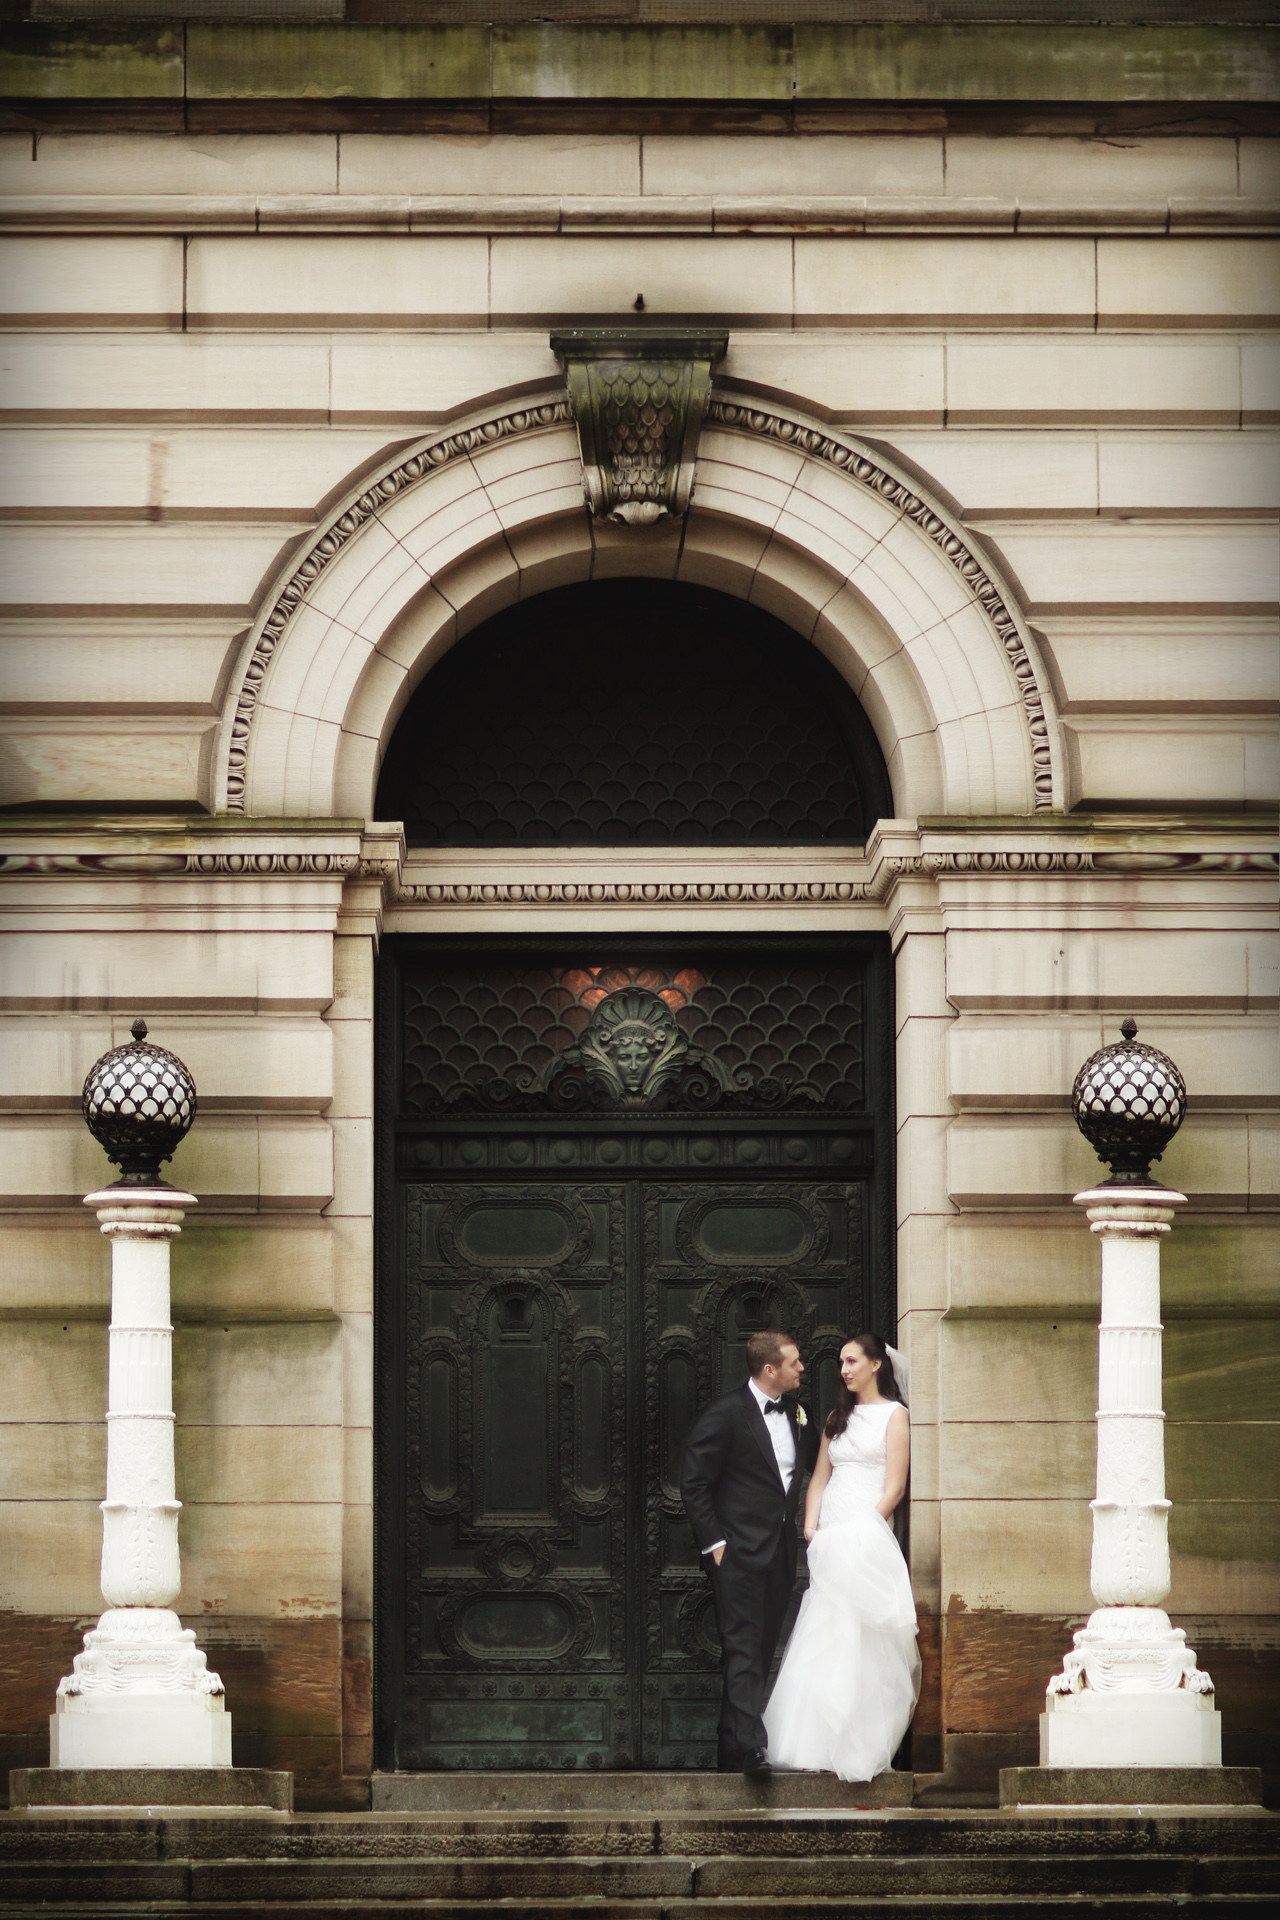 gorgeous wedding image by araujo photo